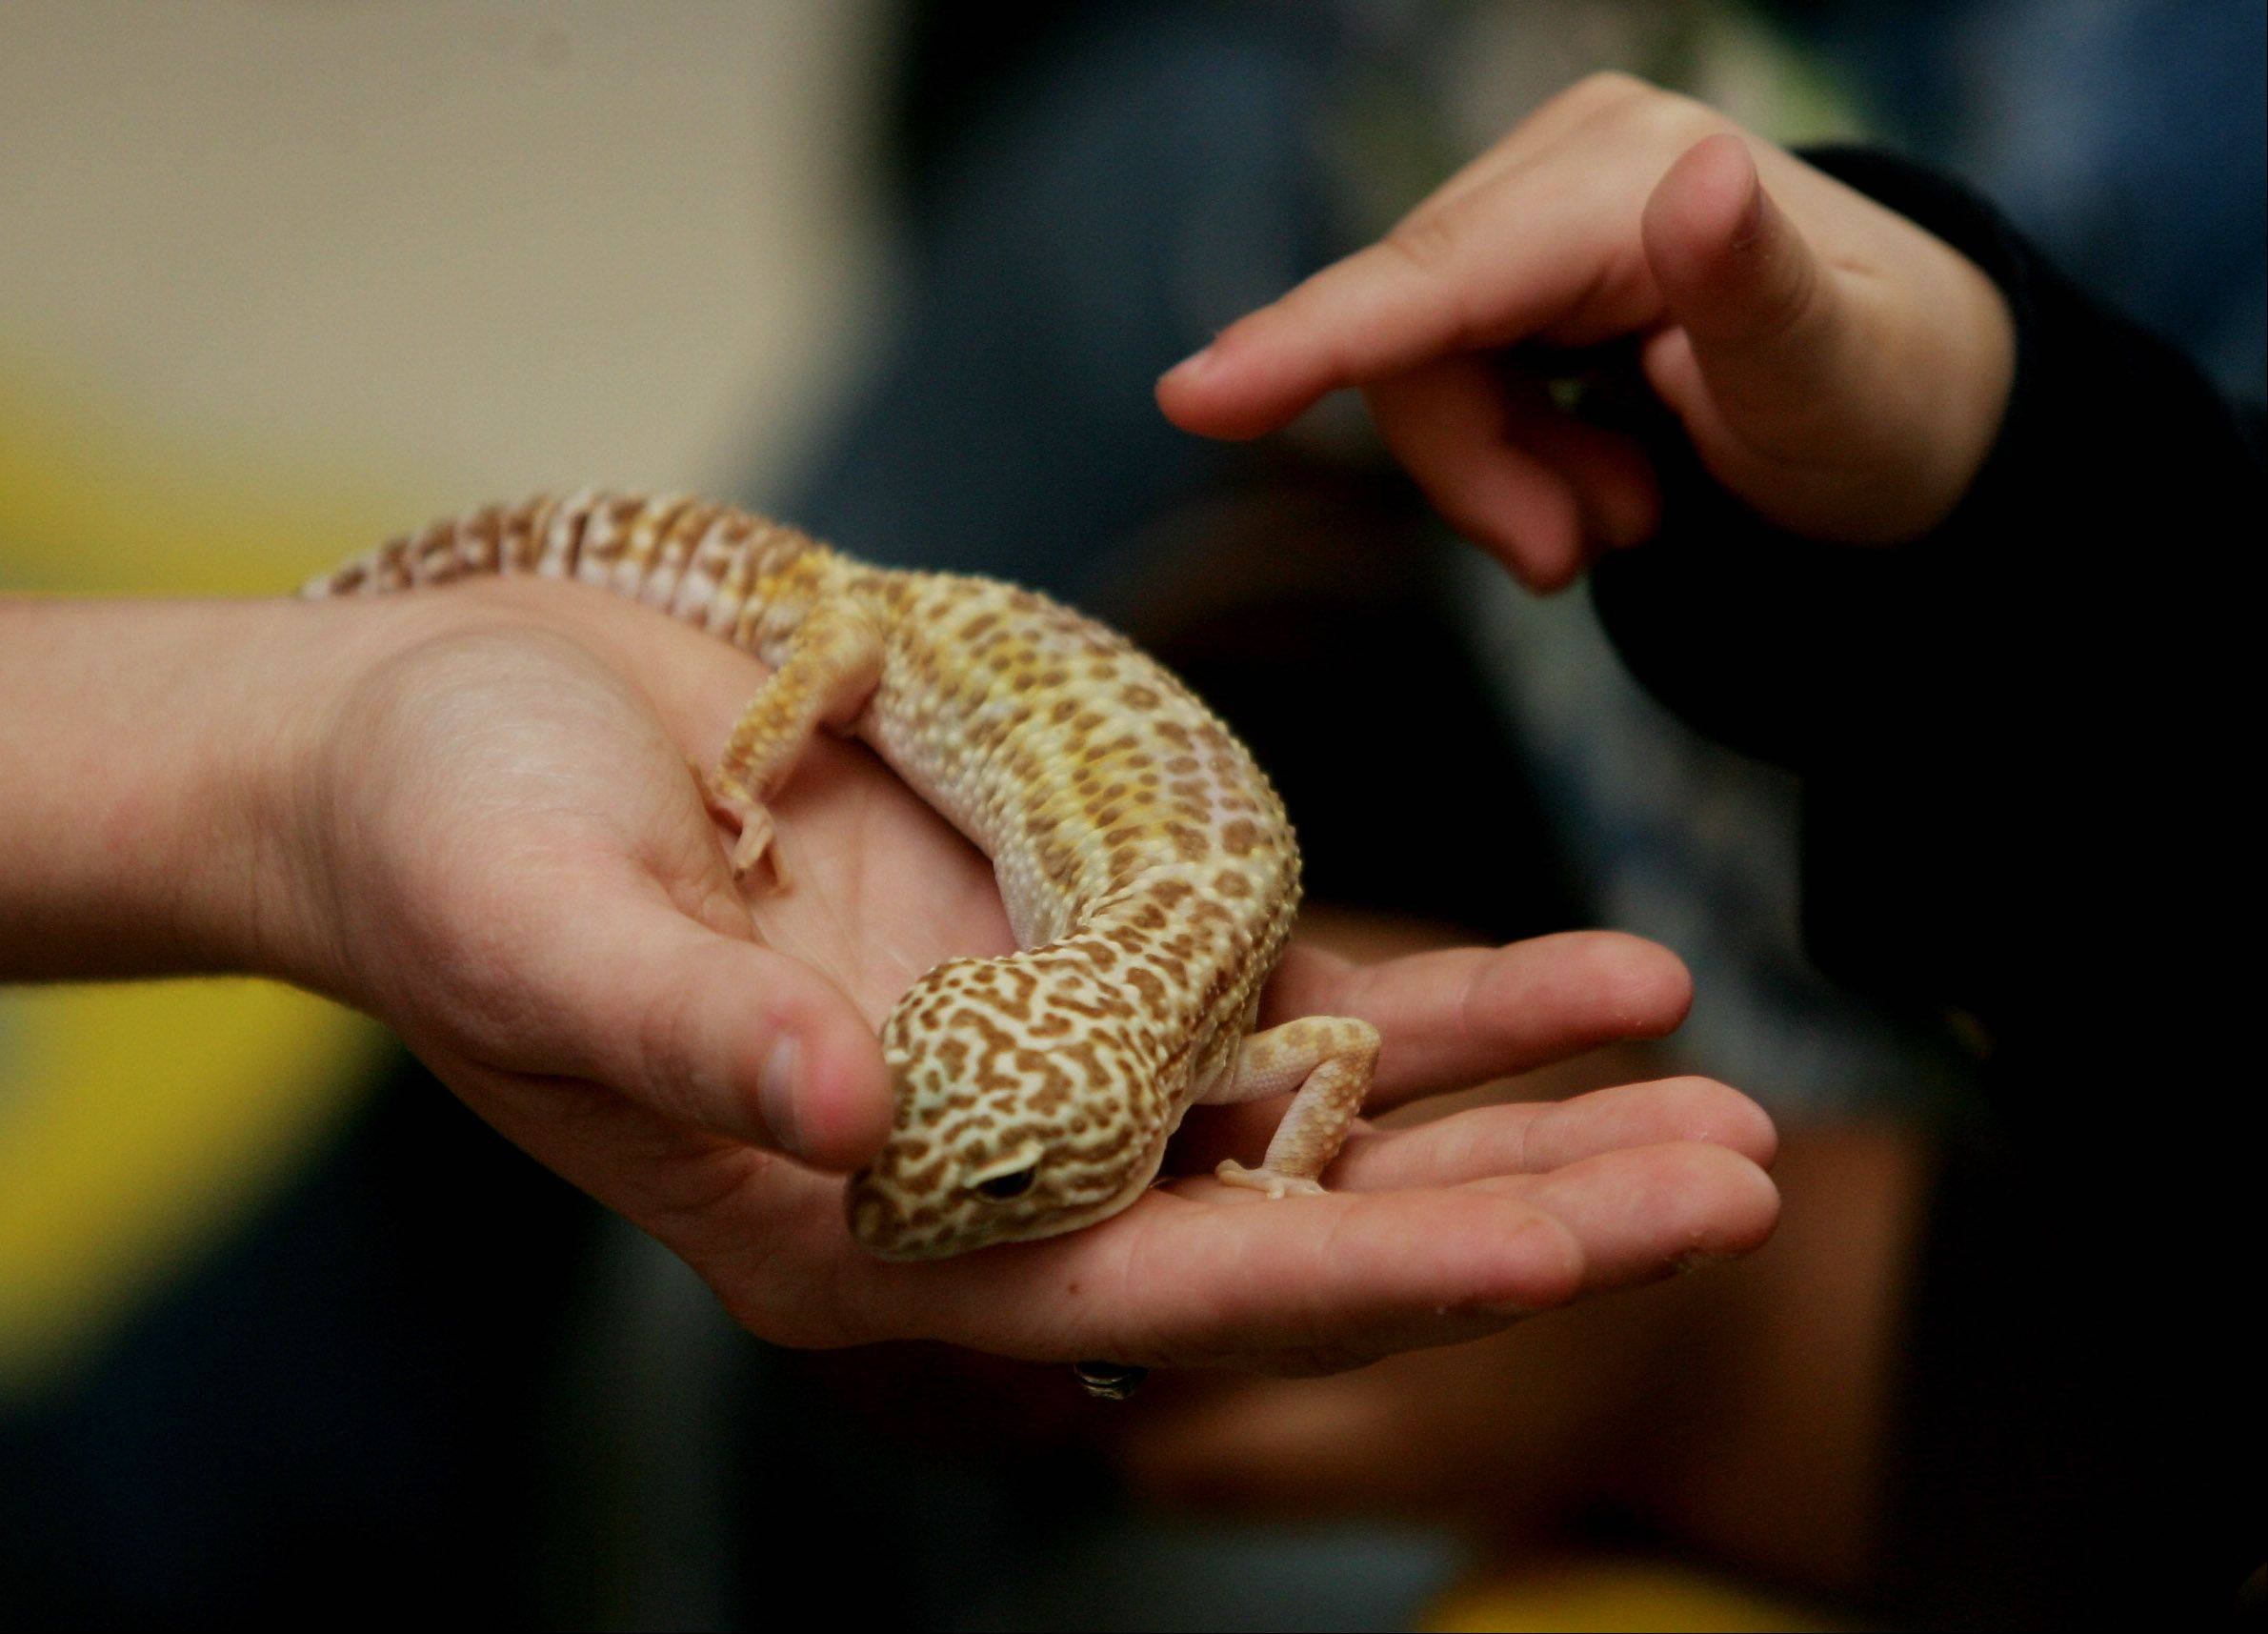 What makes a leopard gecko a good pet? Find out at Repticon Chicagoland, which takes place this weekend in St. Charles.